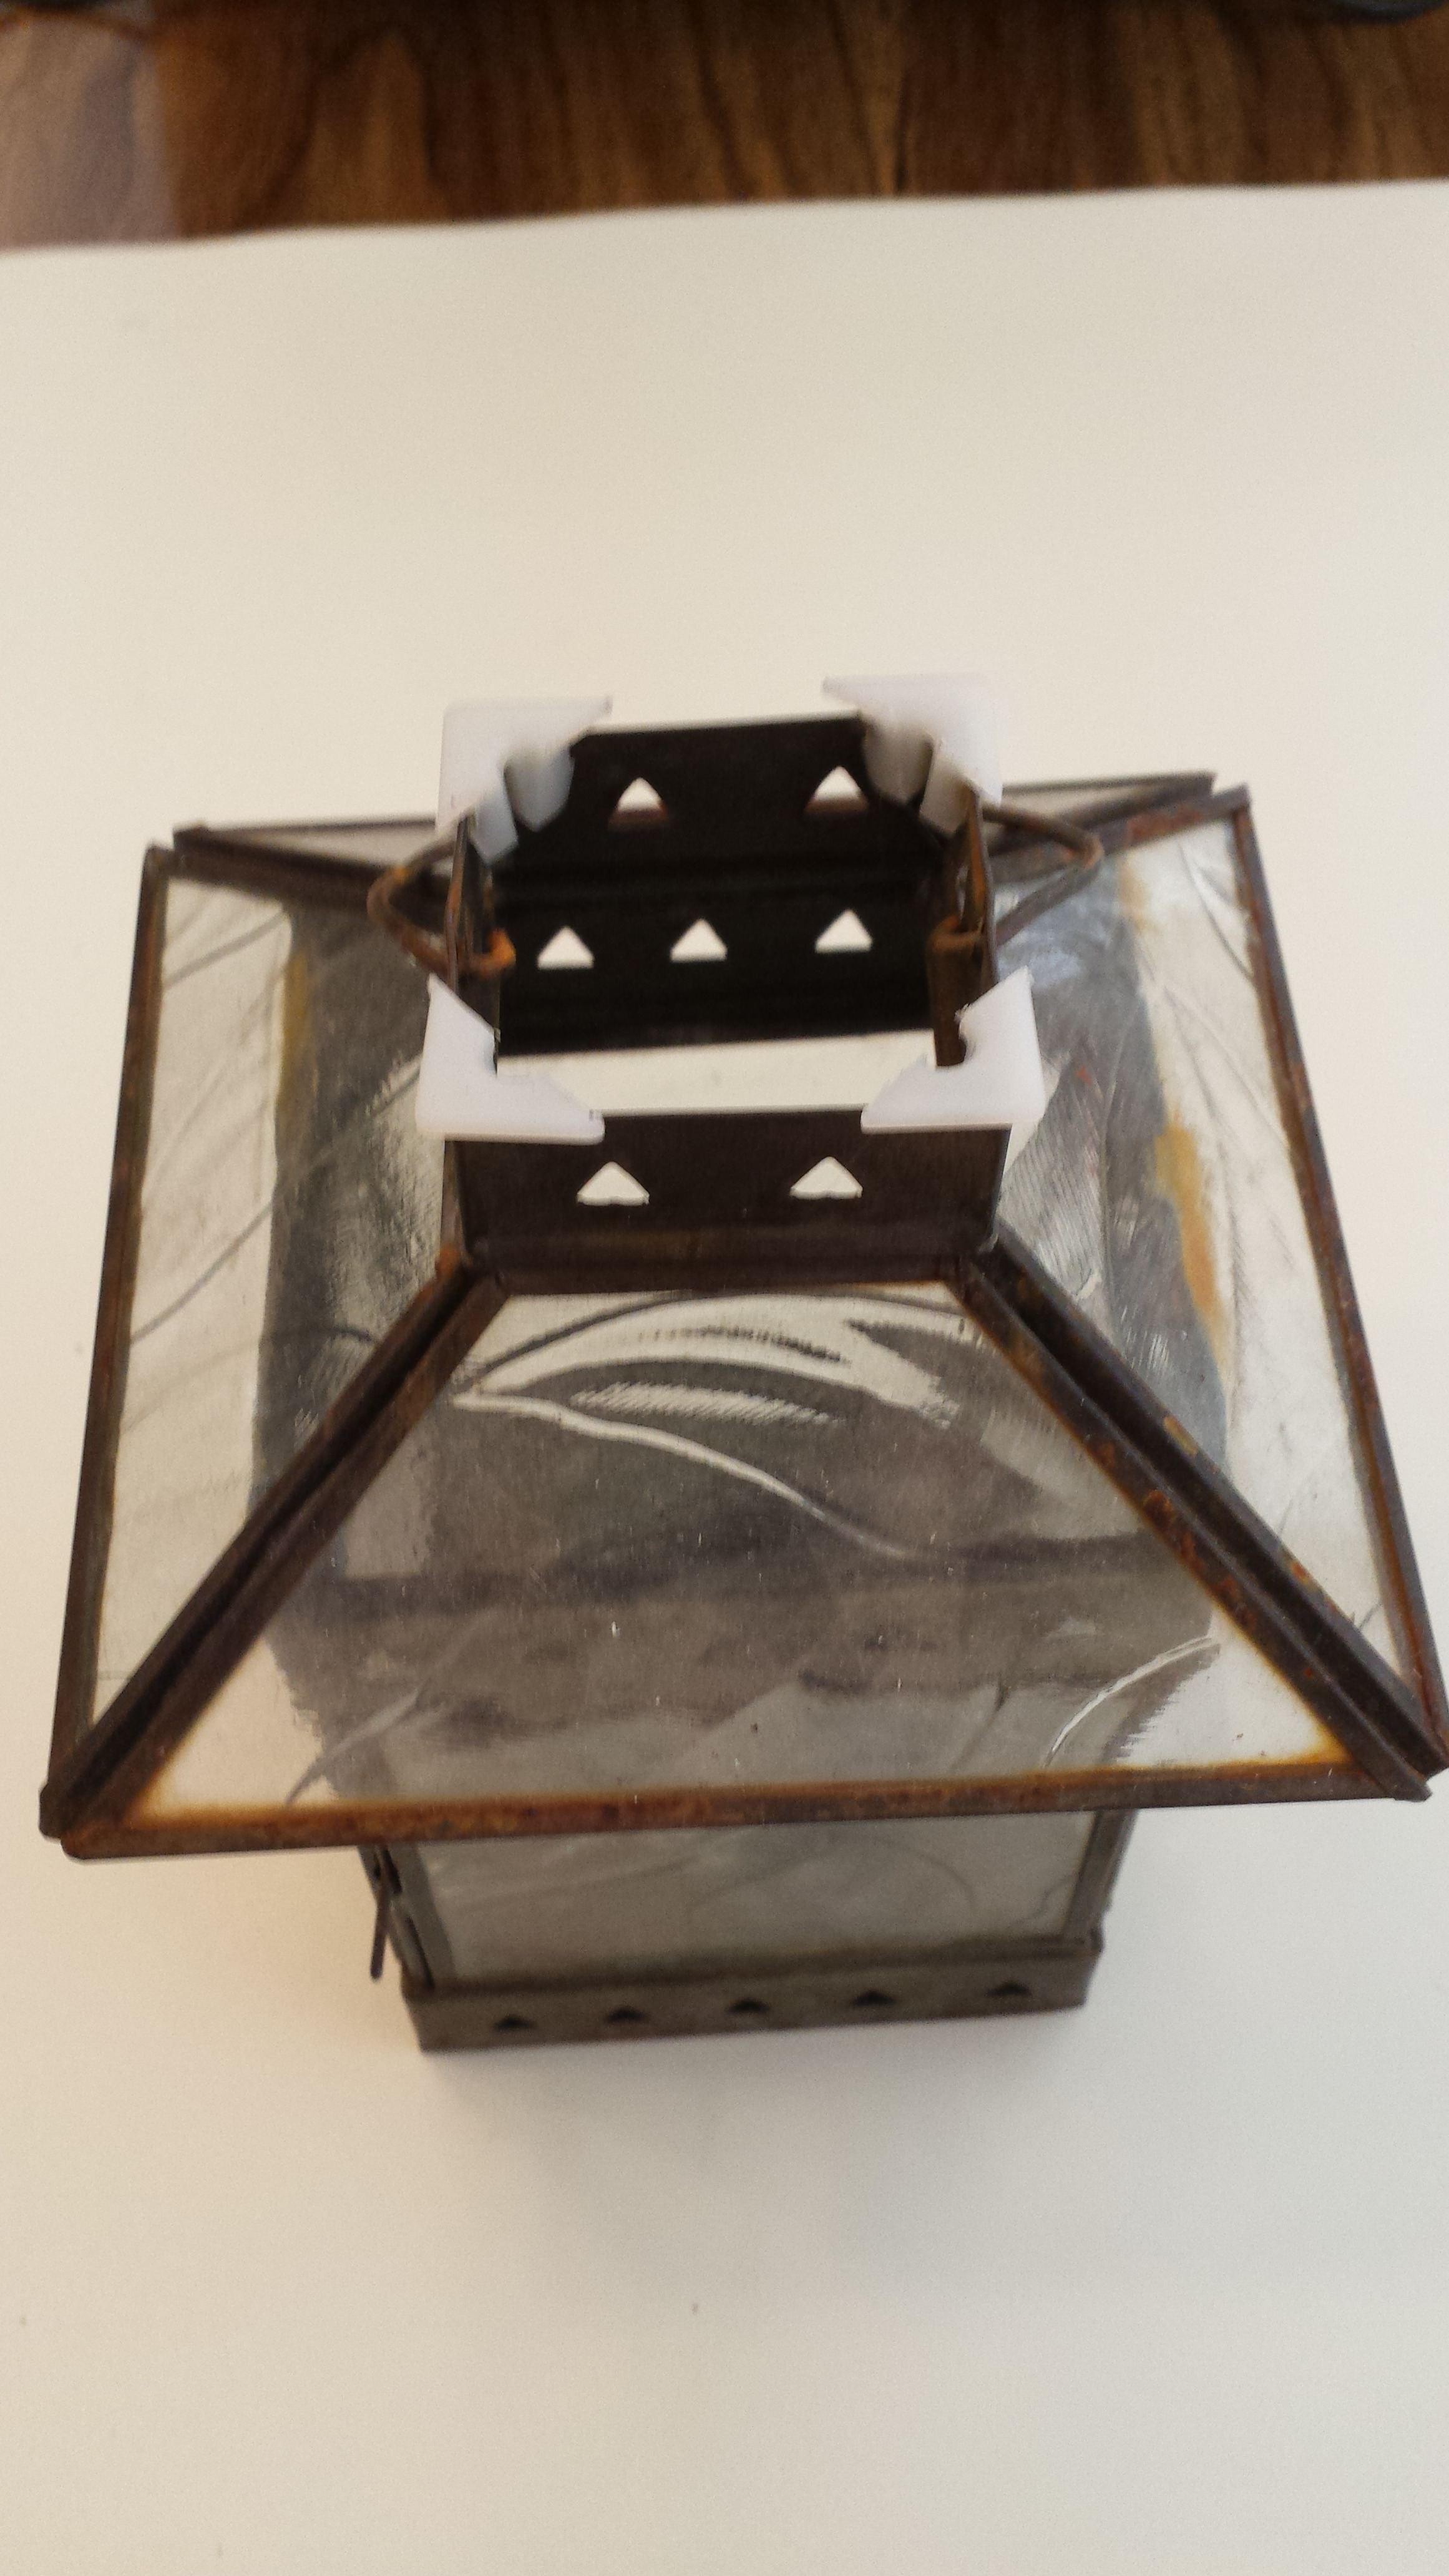 Picture of Prepare the Lantern for the Modified Electronics.